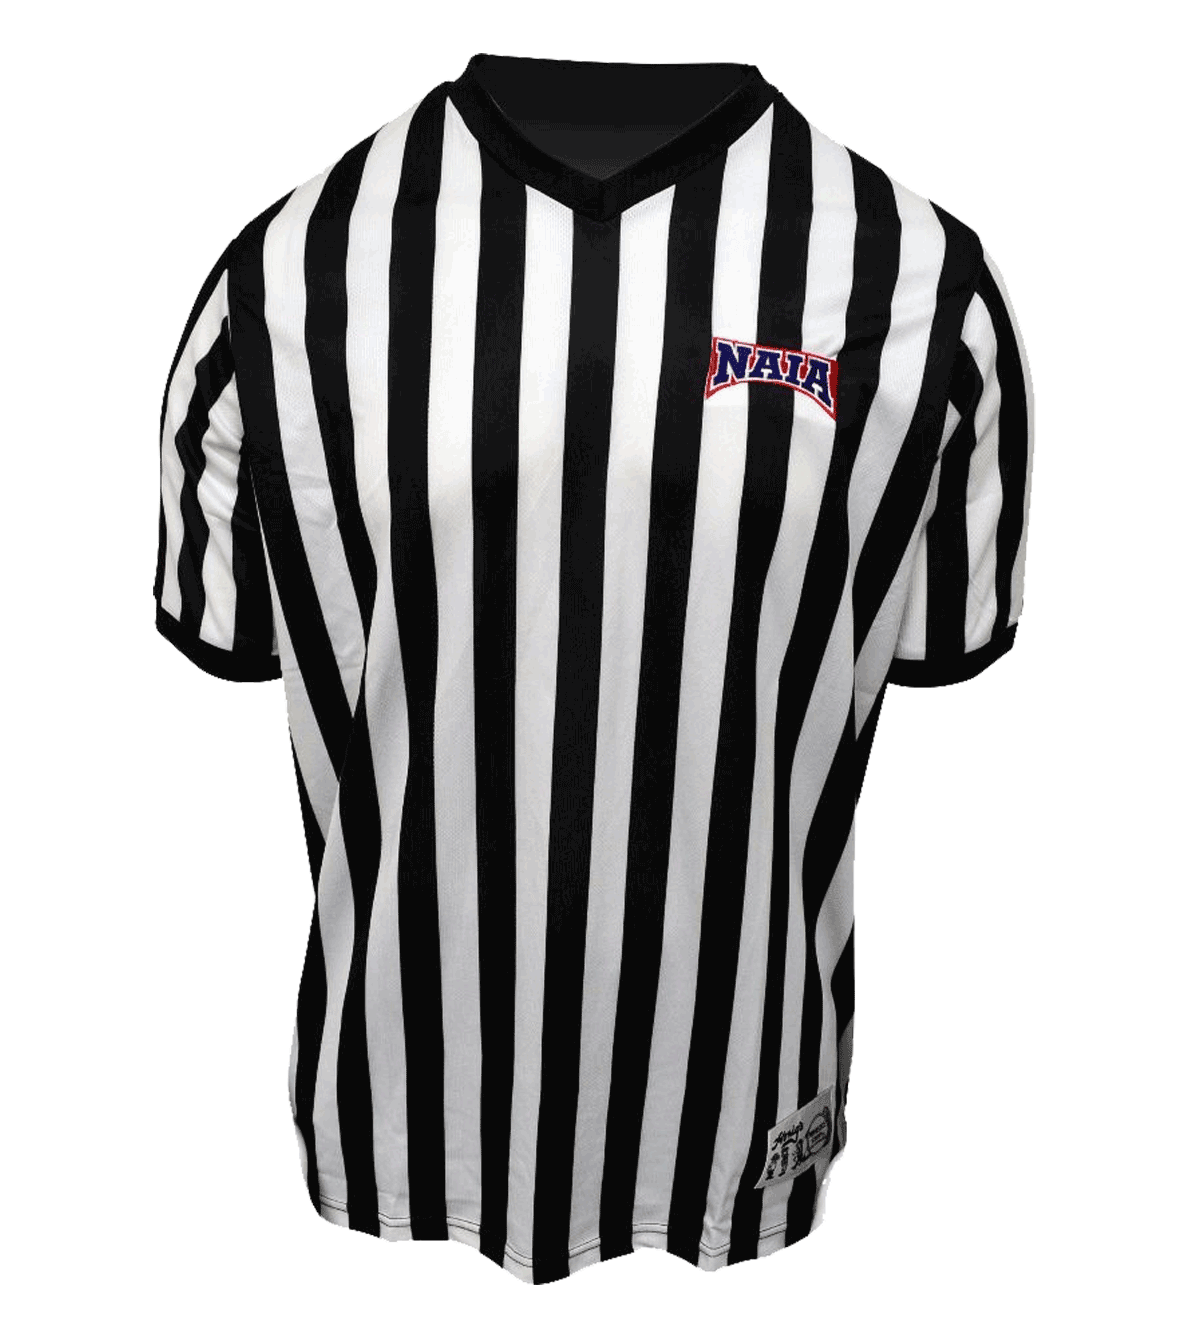 NAIA Officials Shirts